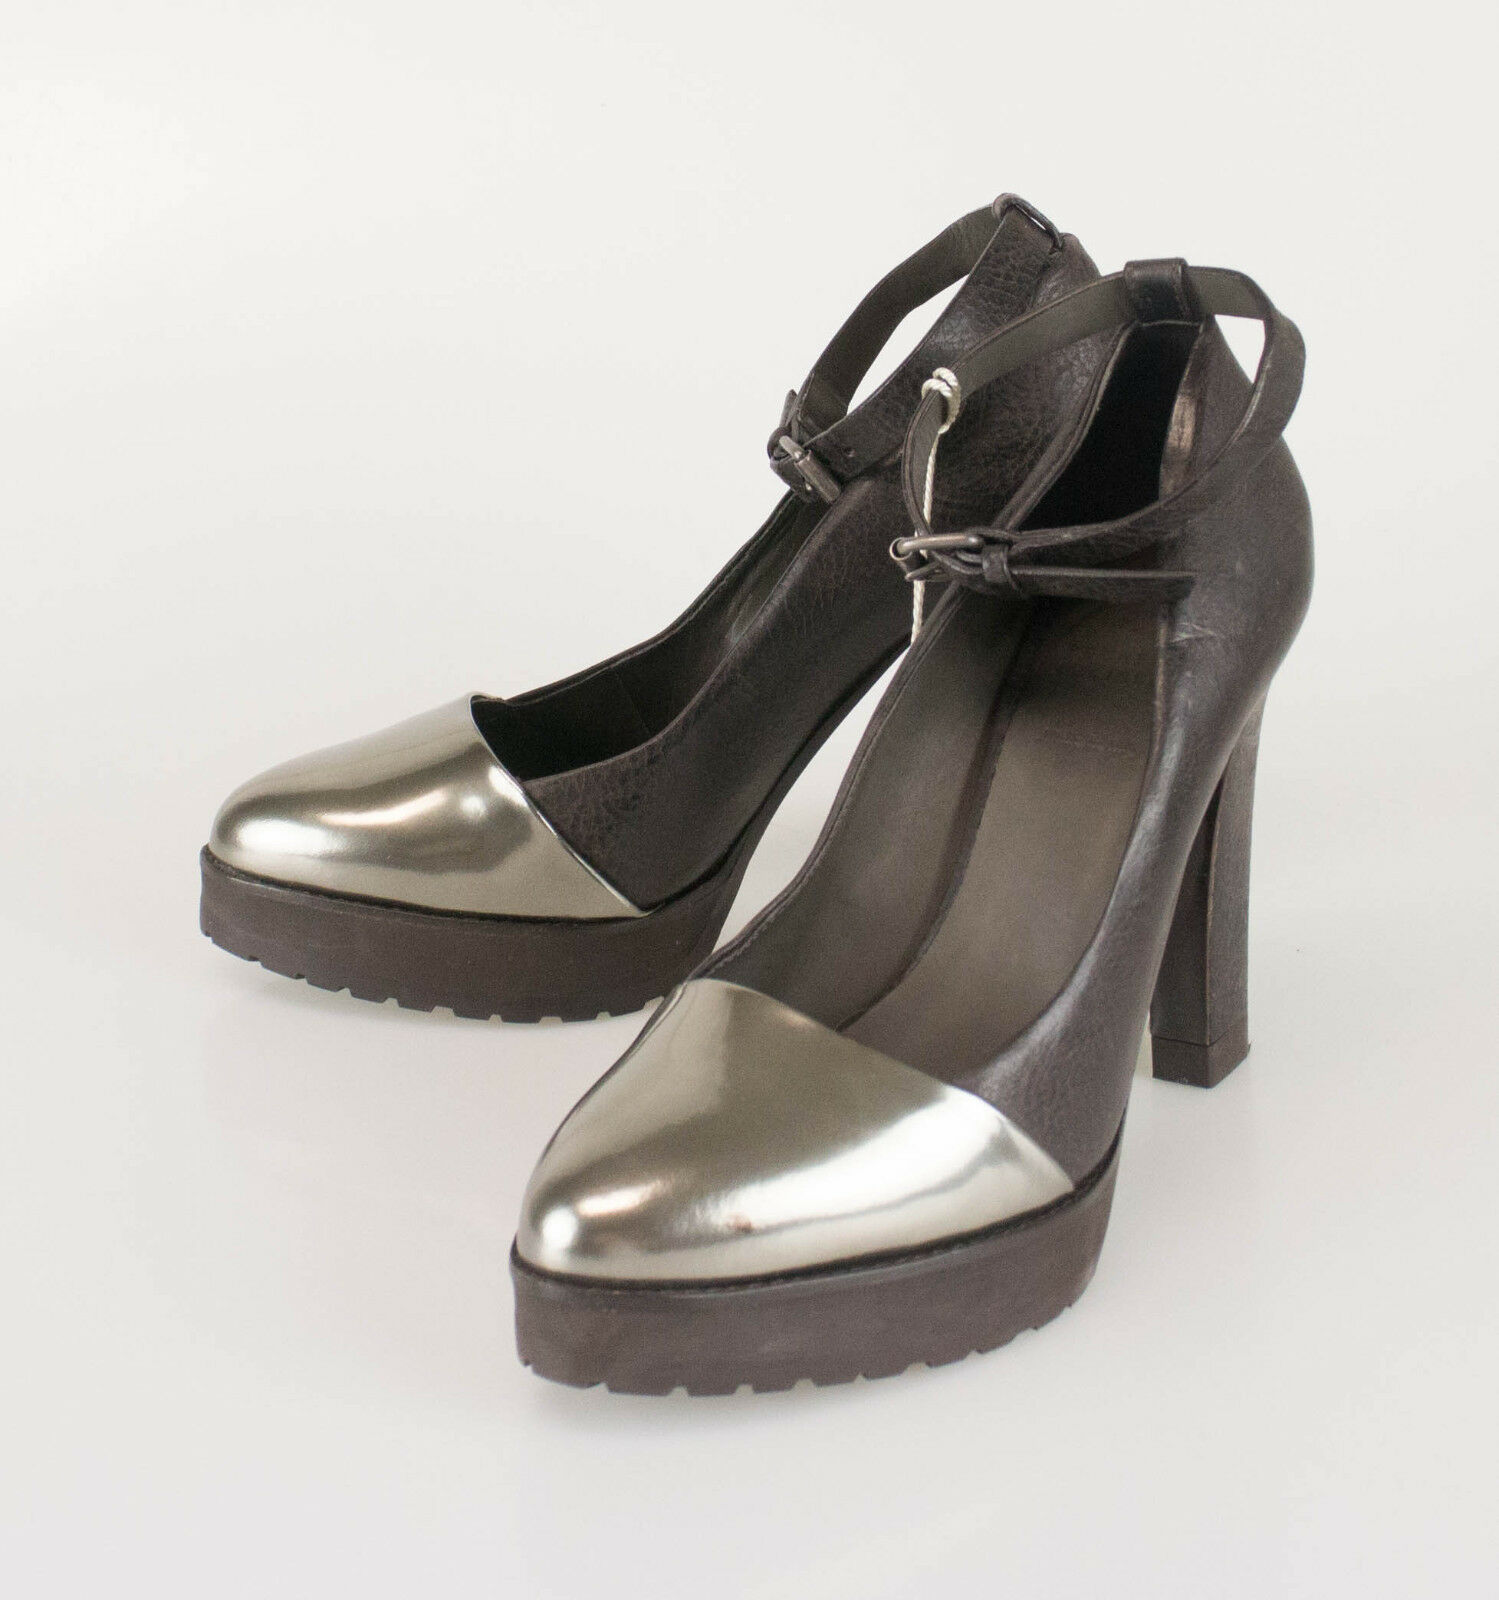 New BRUNELLO CUCINELLI Brown Leather Pumps Heels shoes Size 39.5 9.5